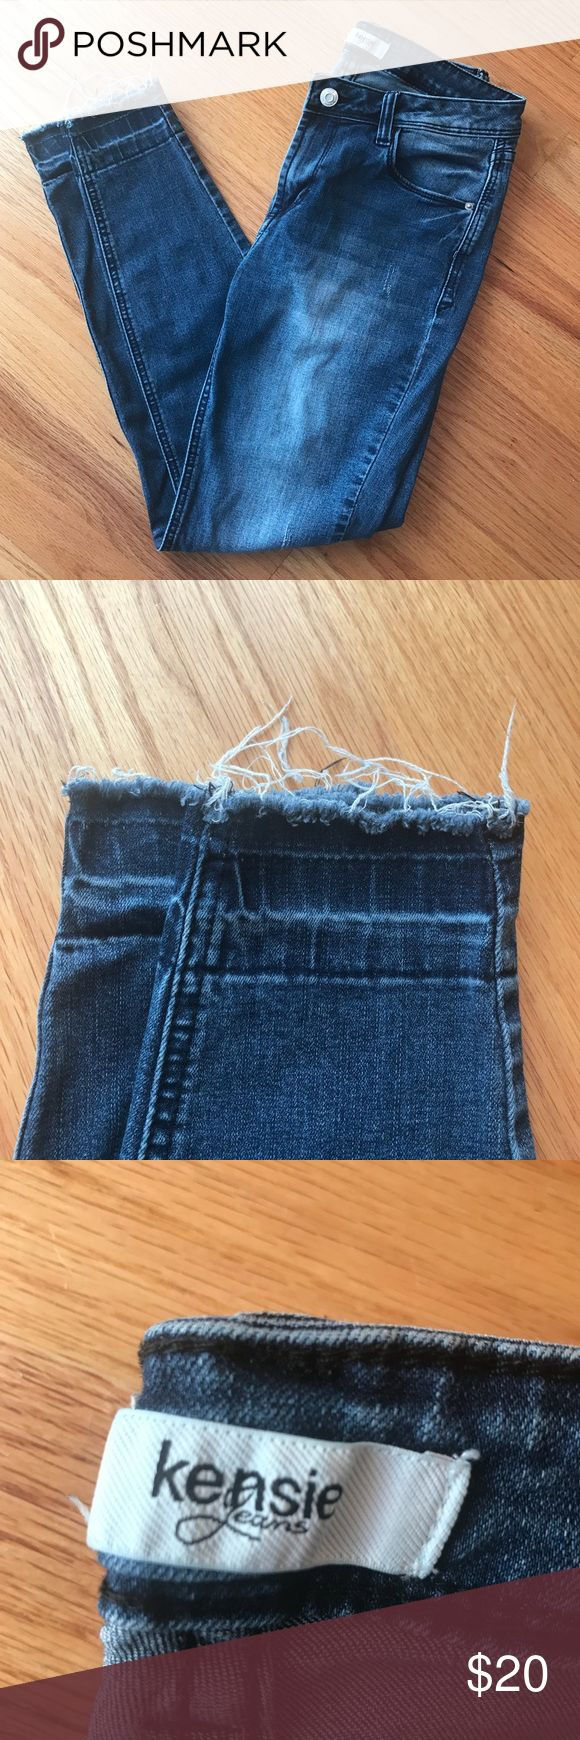 Kensie jeans size 4, distressed Raw edges at ankle. Some light distressing on legs (see pic). Skinny, some stretch. Kensie Jeans Skinny